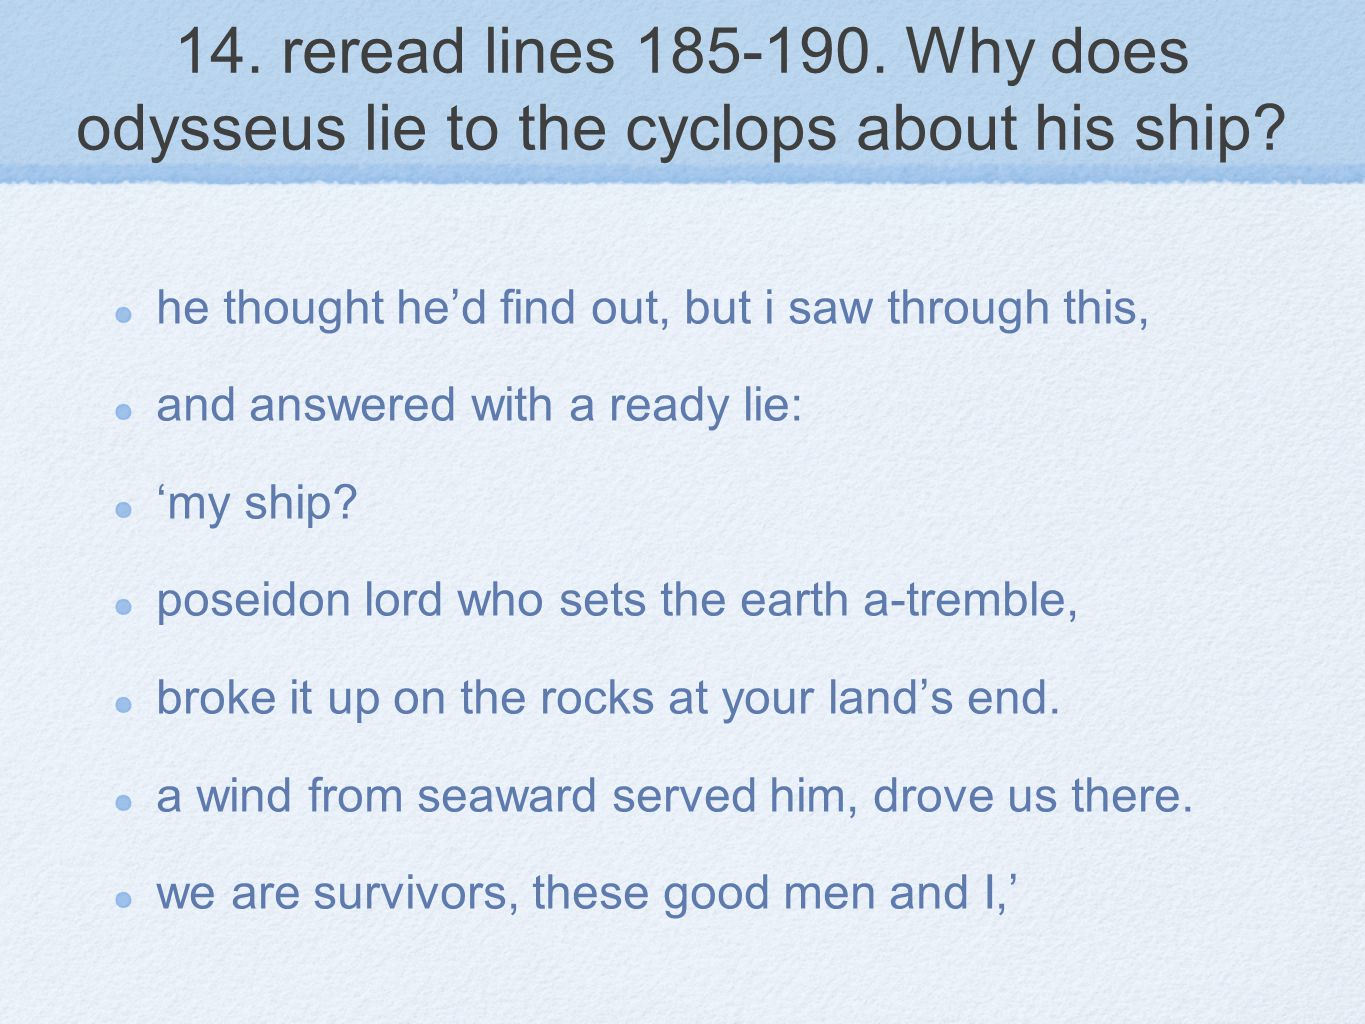 14. reread lines 185-190. Why does odysseus lie to the cyclops about his ship